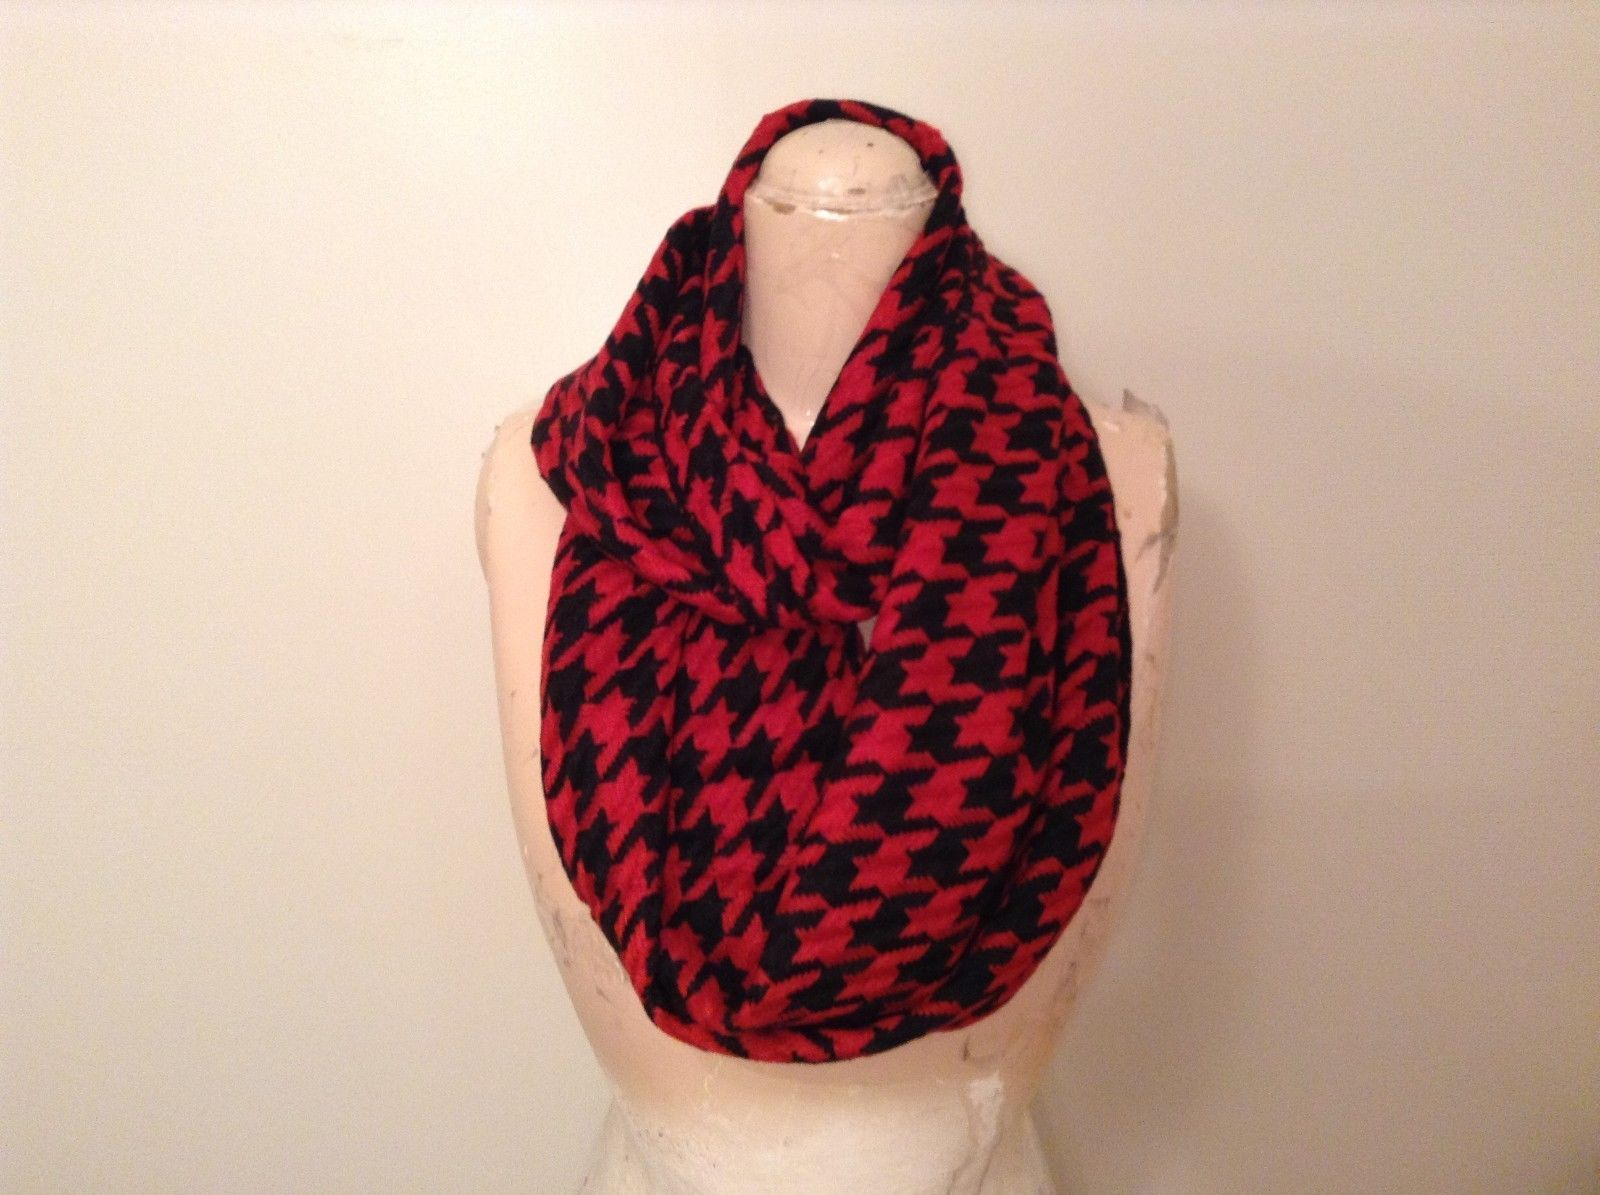 Hounds tooth Pattern 66 inch long Infinity scarf in choice of fashion colors